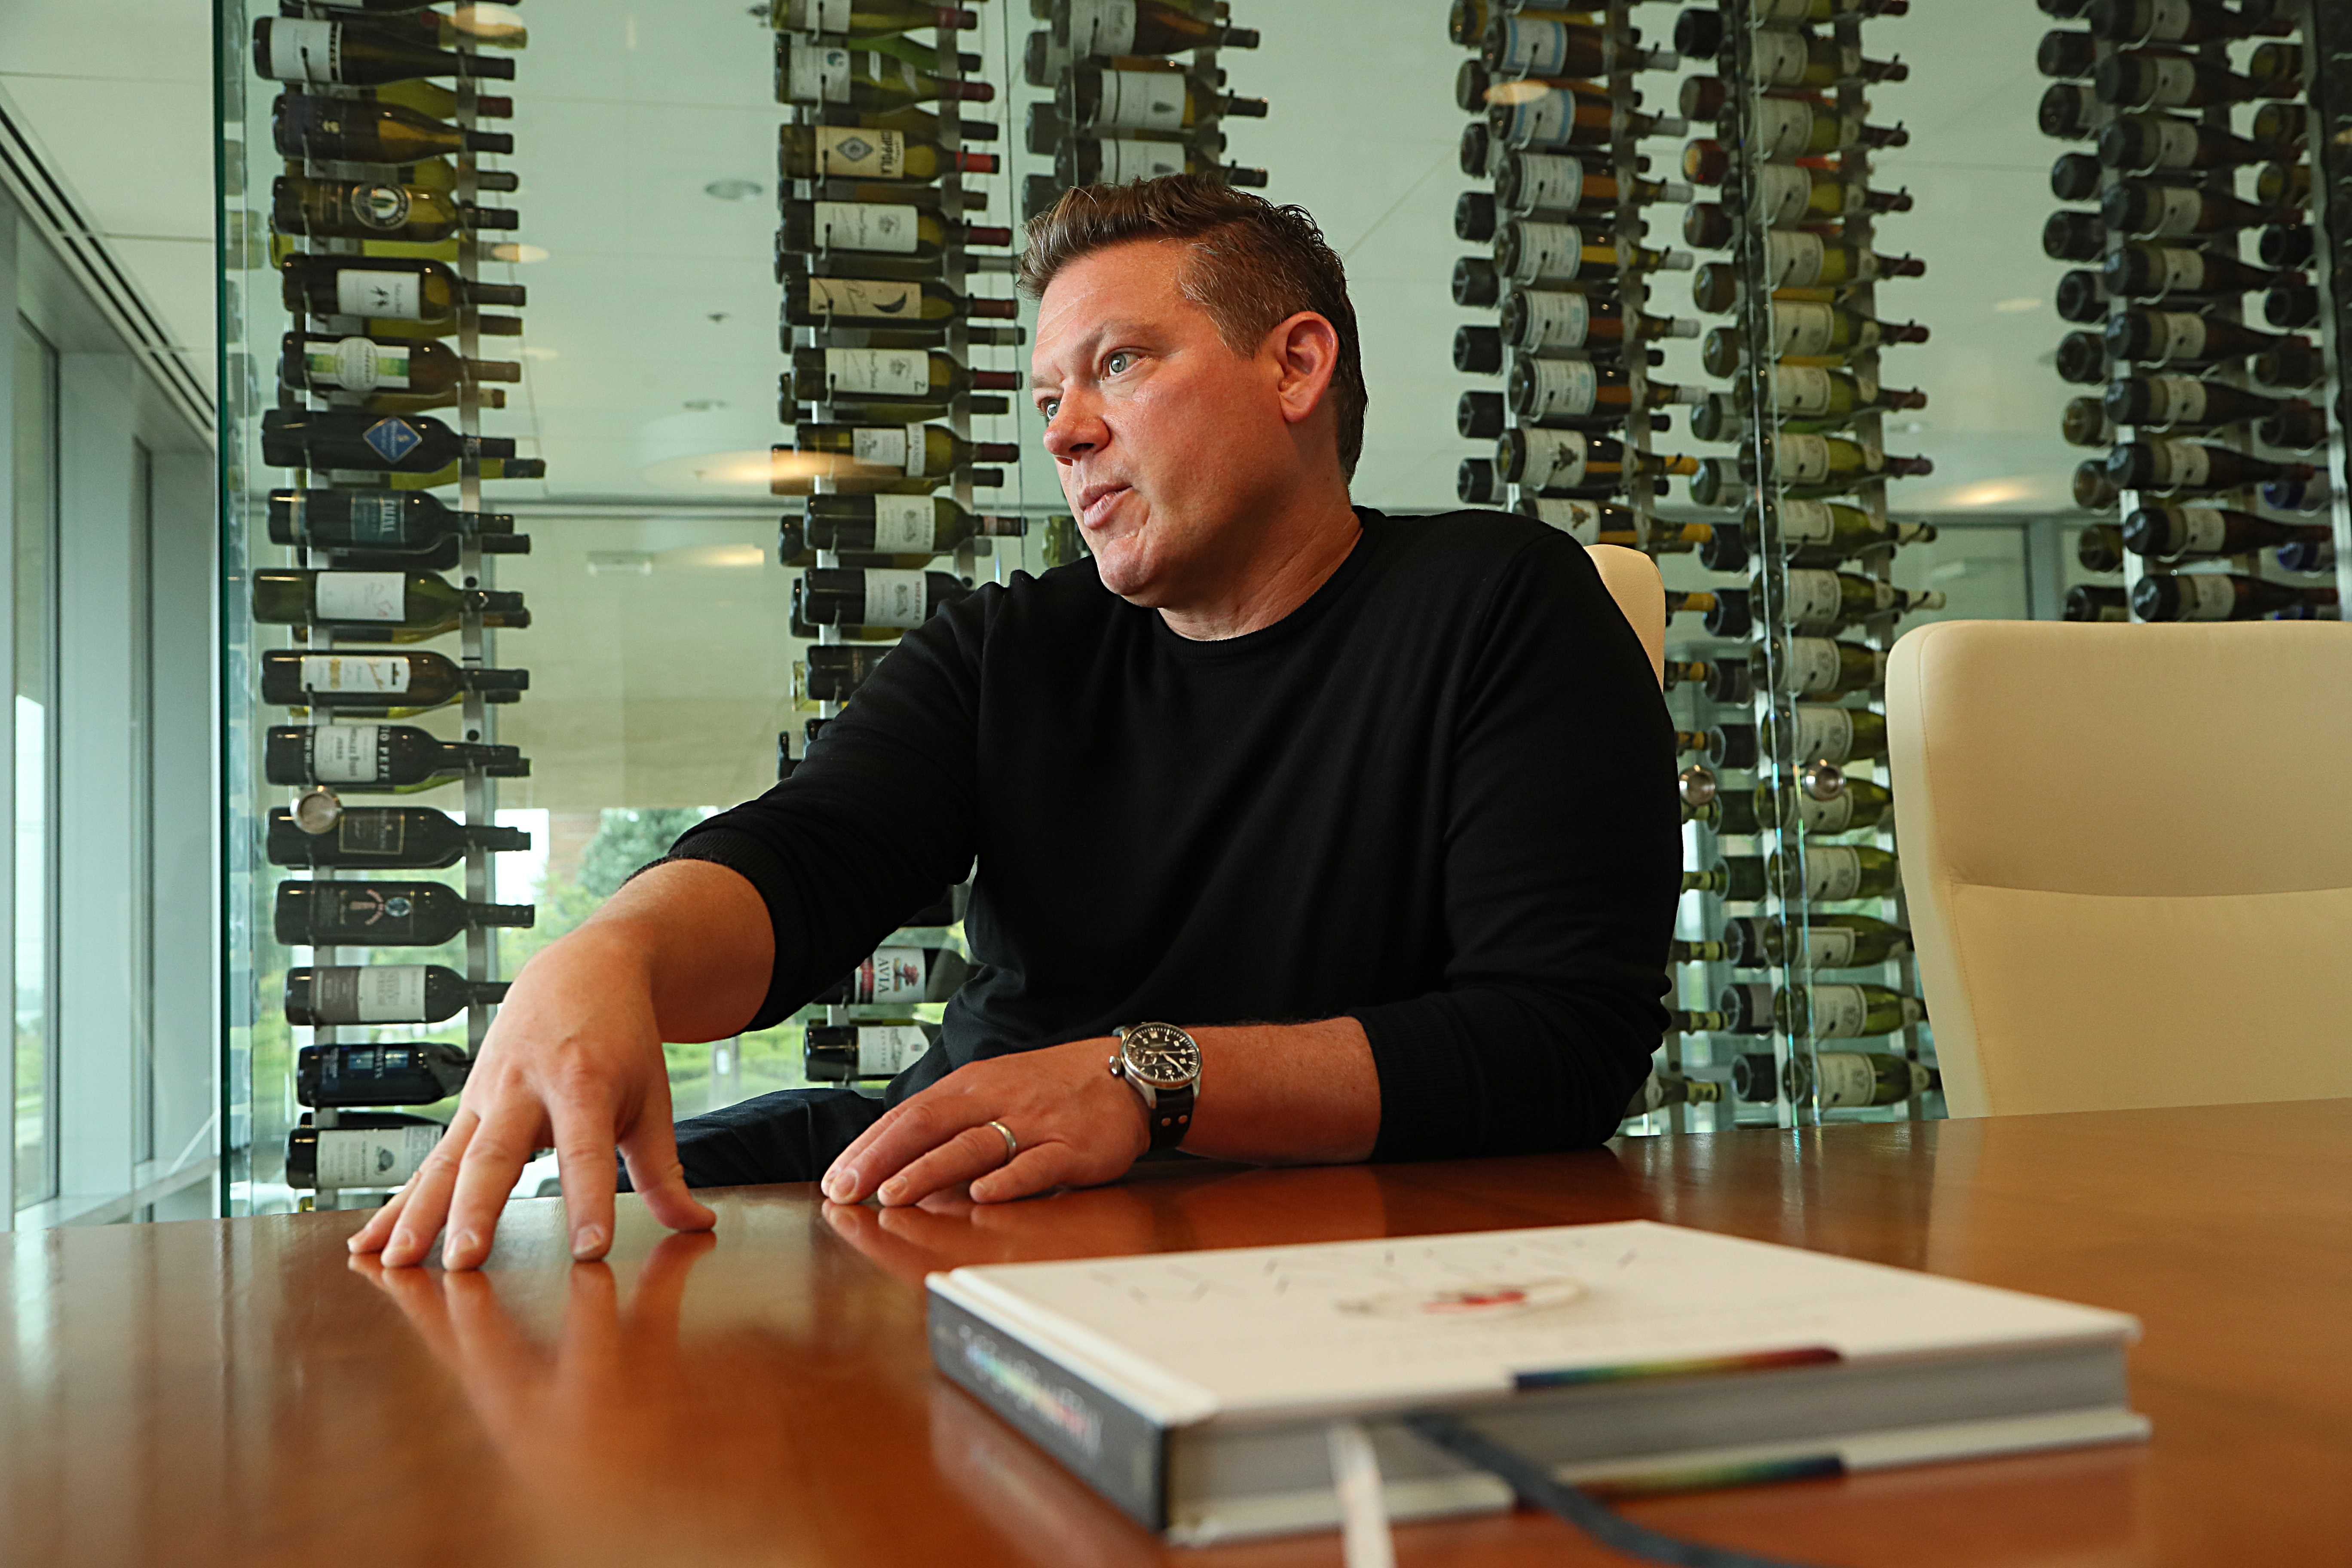 Tyler Florence, chef and television host of several Food Network shows, is Johnson & Wales University's first Food Entrepreneur in Residence.